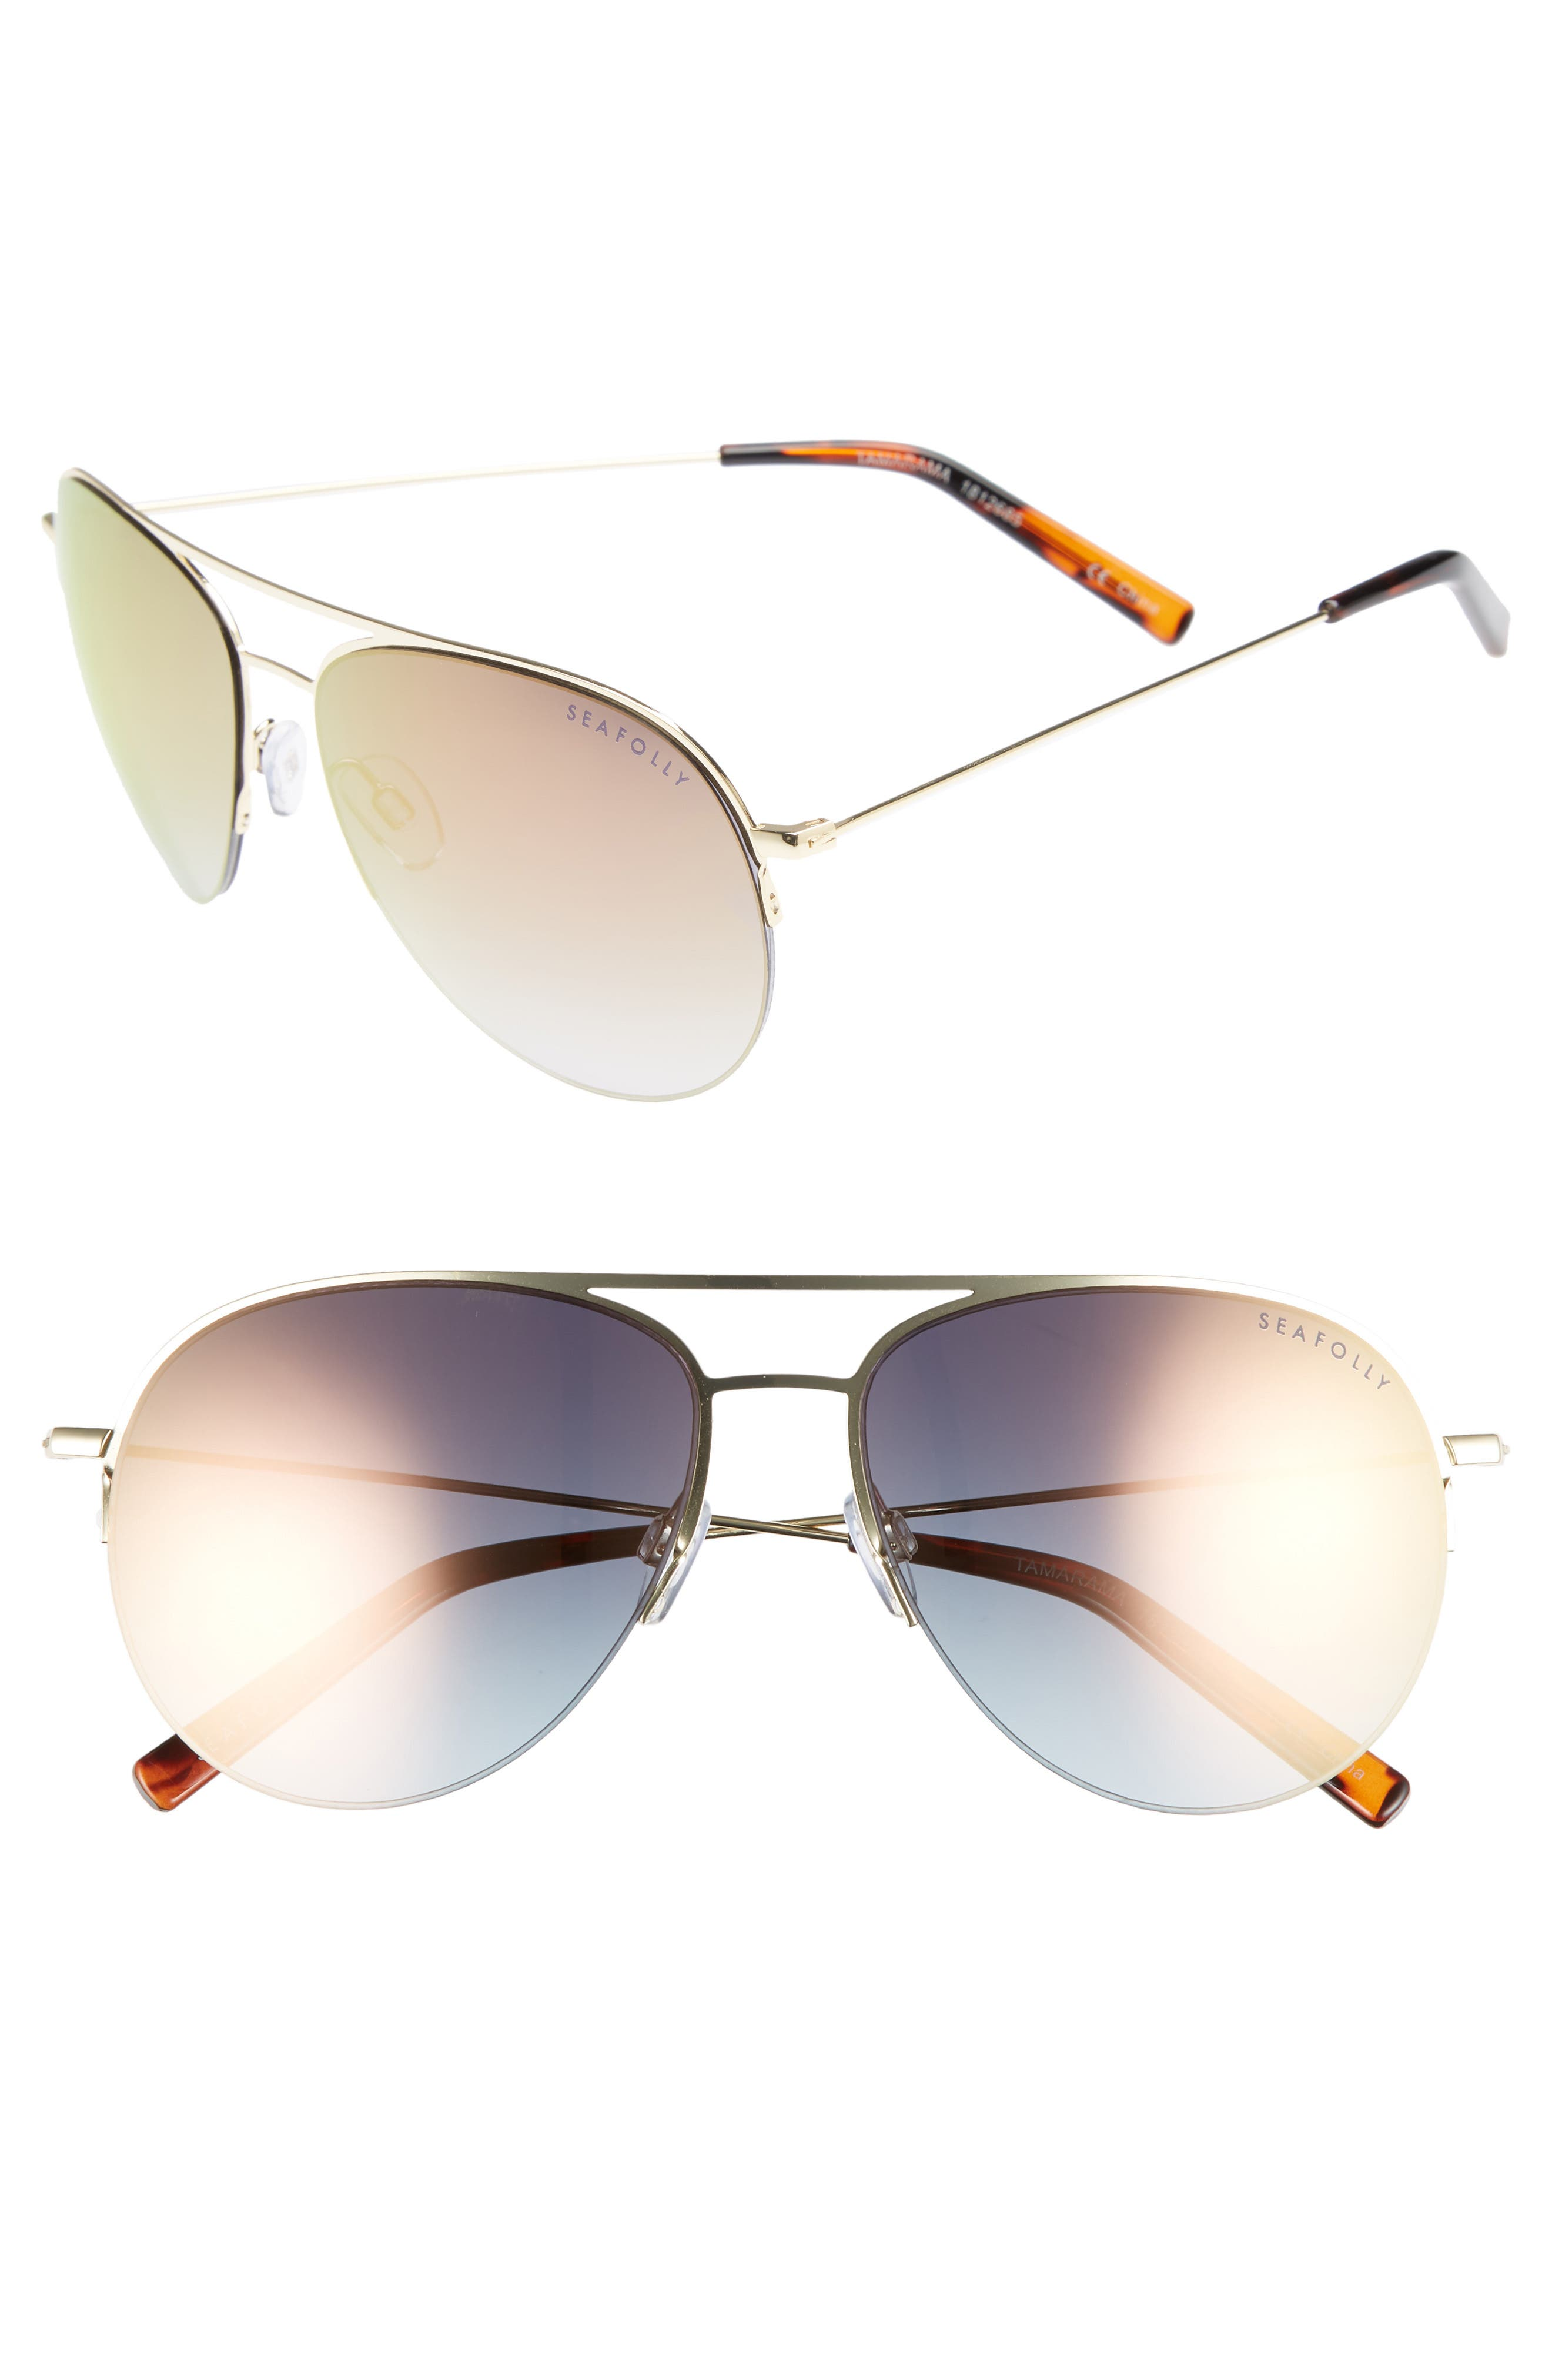 TAMARAMA 60MM AVIATOR SUNGLASSES - GOLD